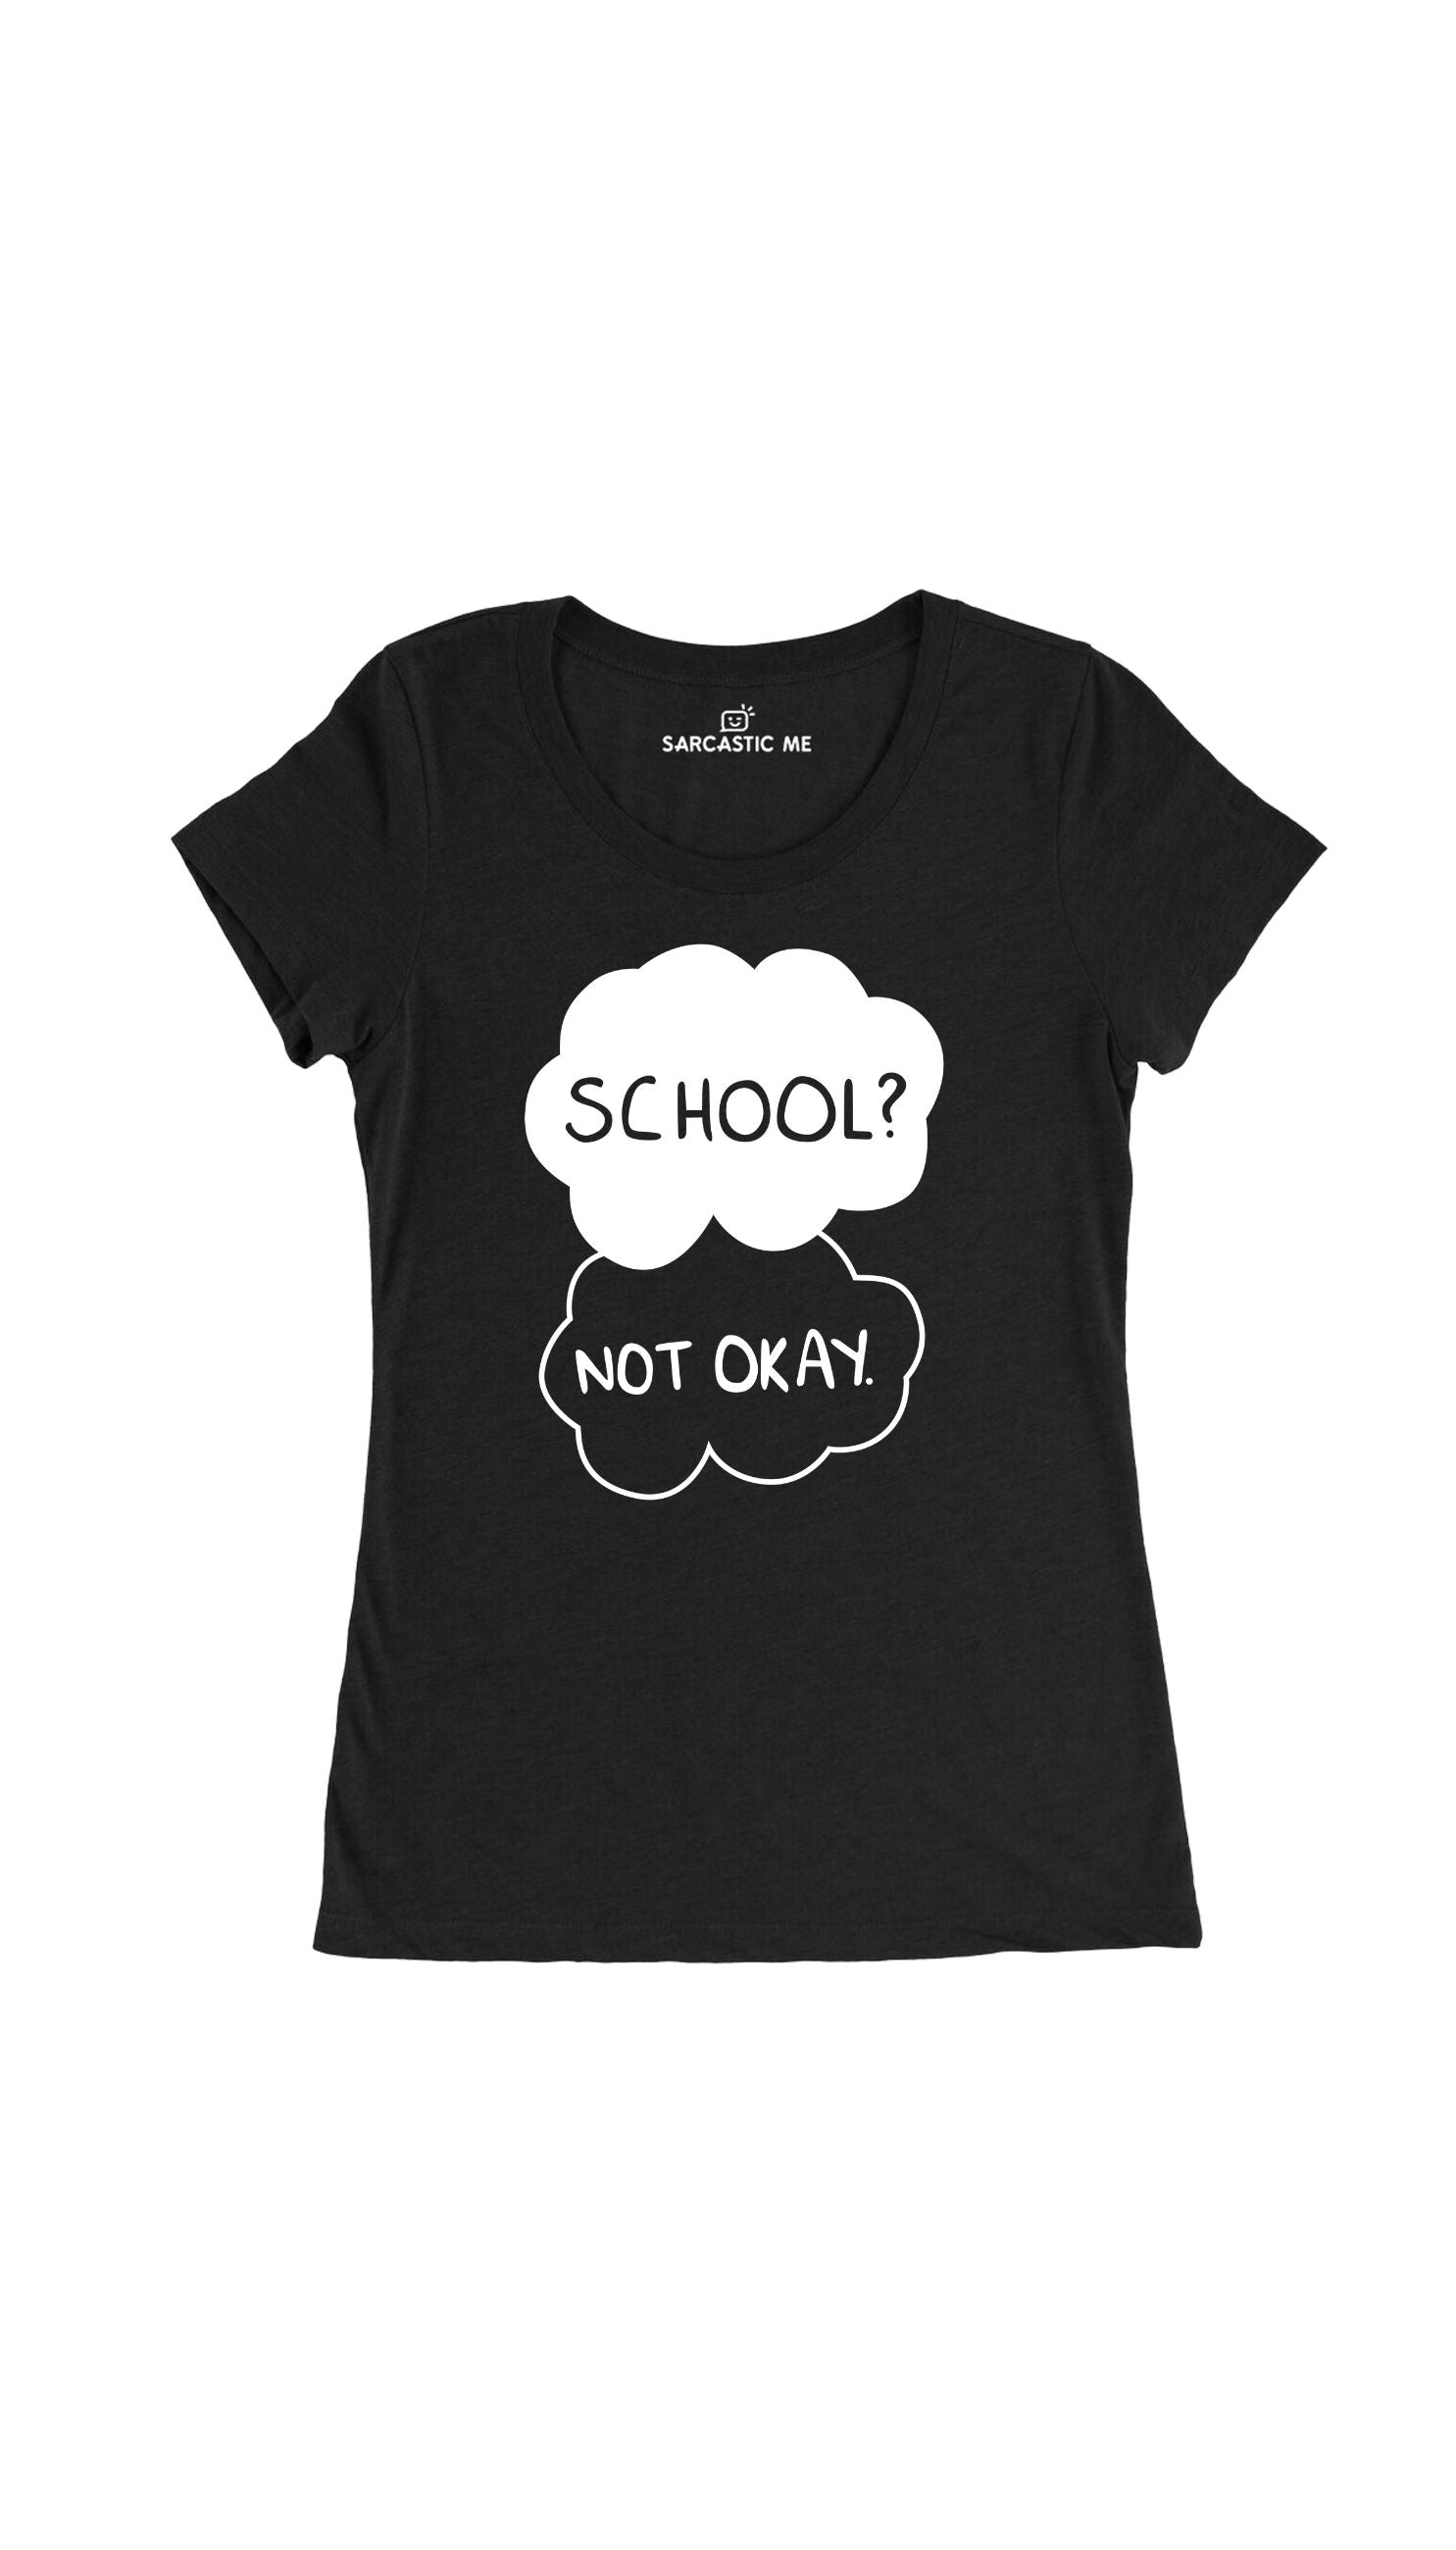 School Not Okay Black Women's T-Shirt | Sarcastic Me